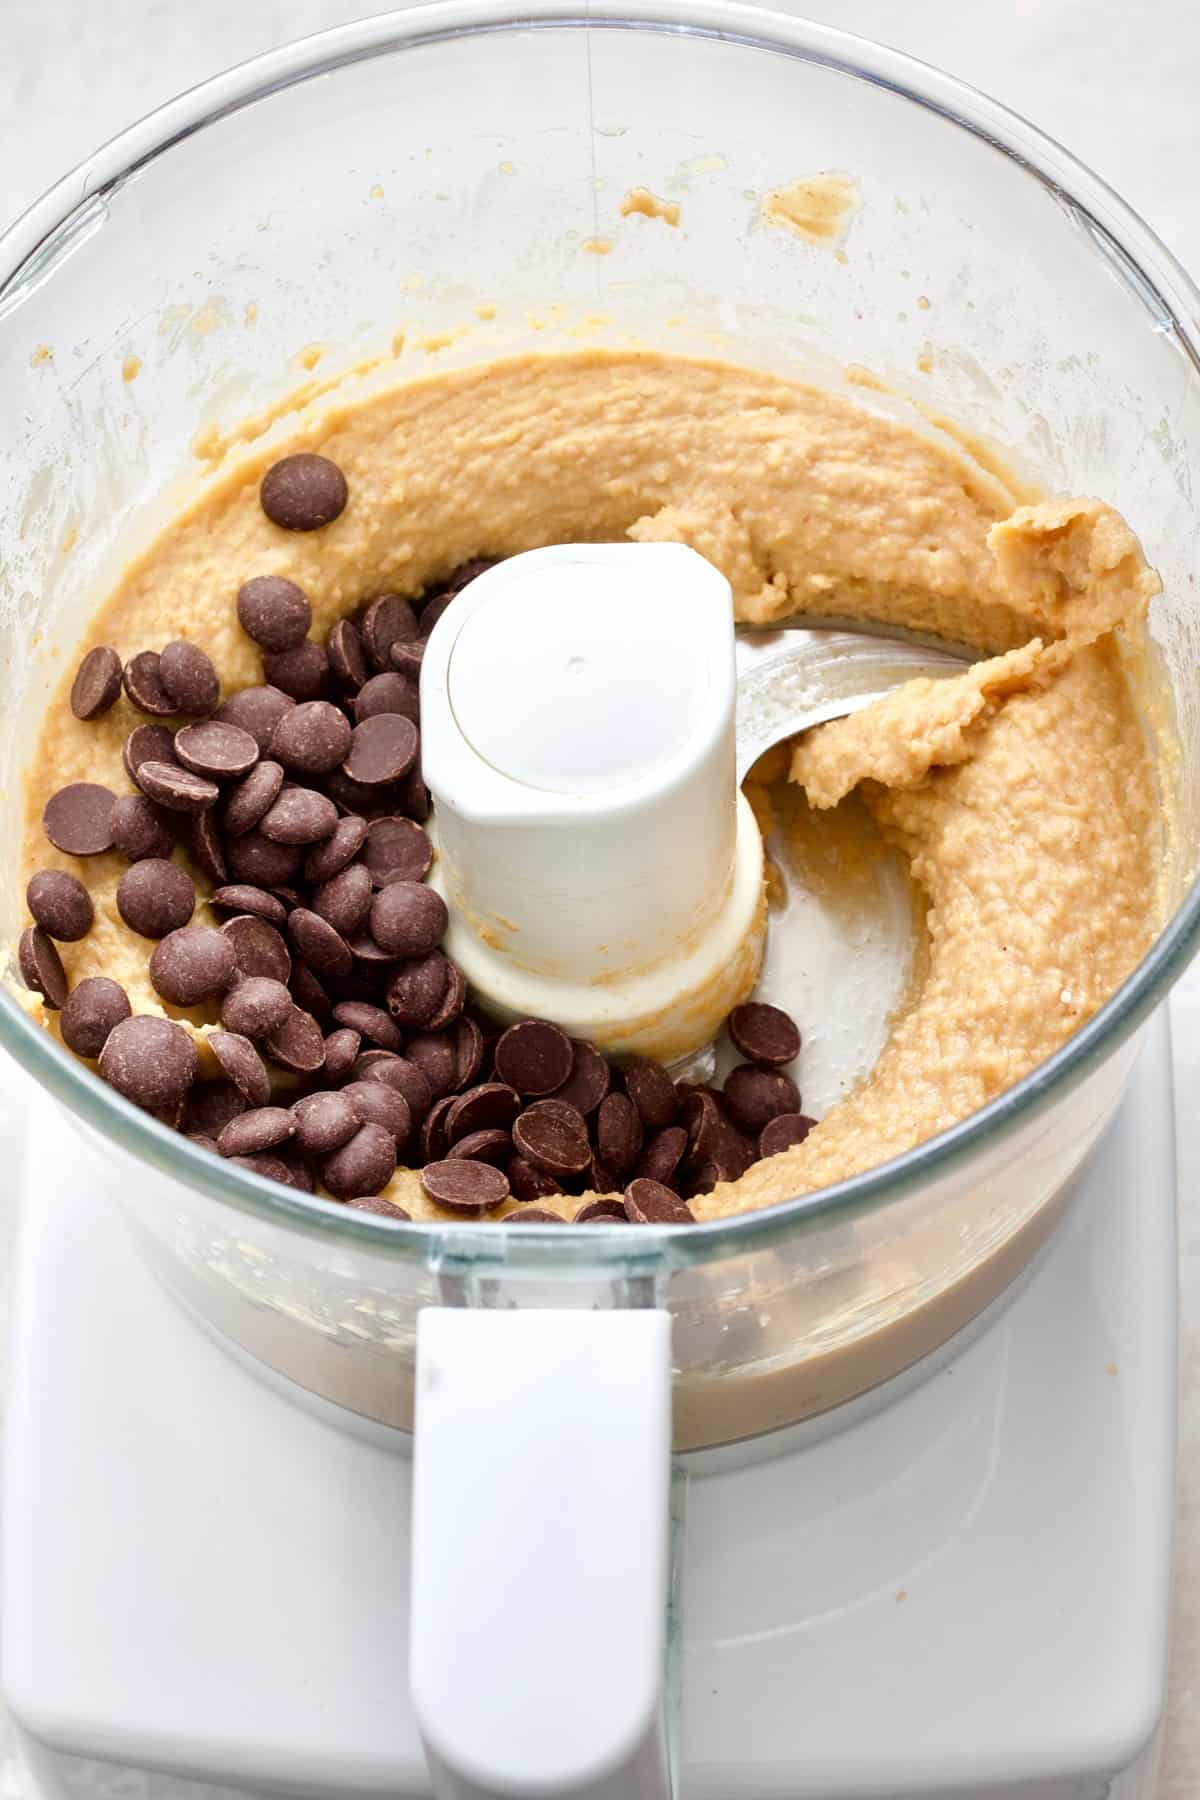 Chocolate chips added to blondie batter.